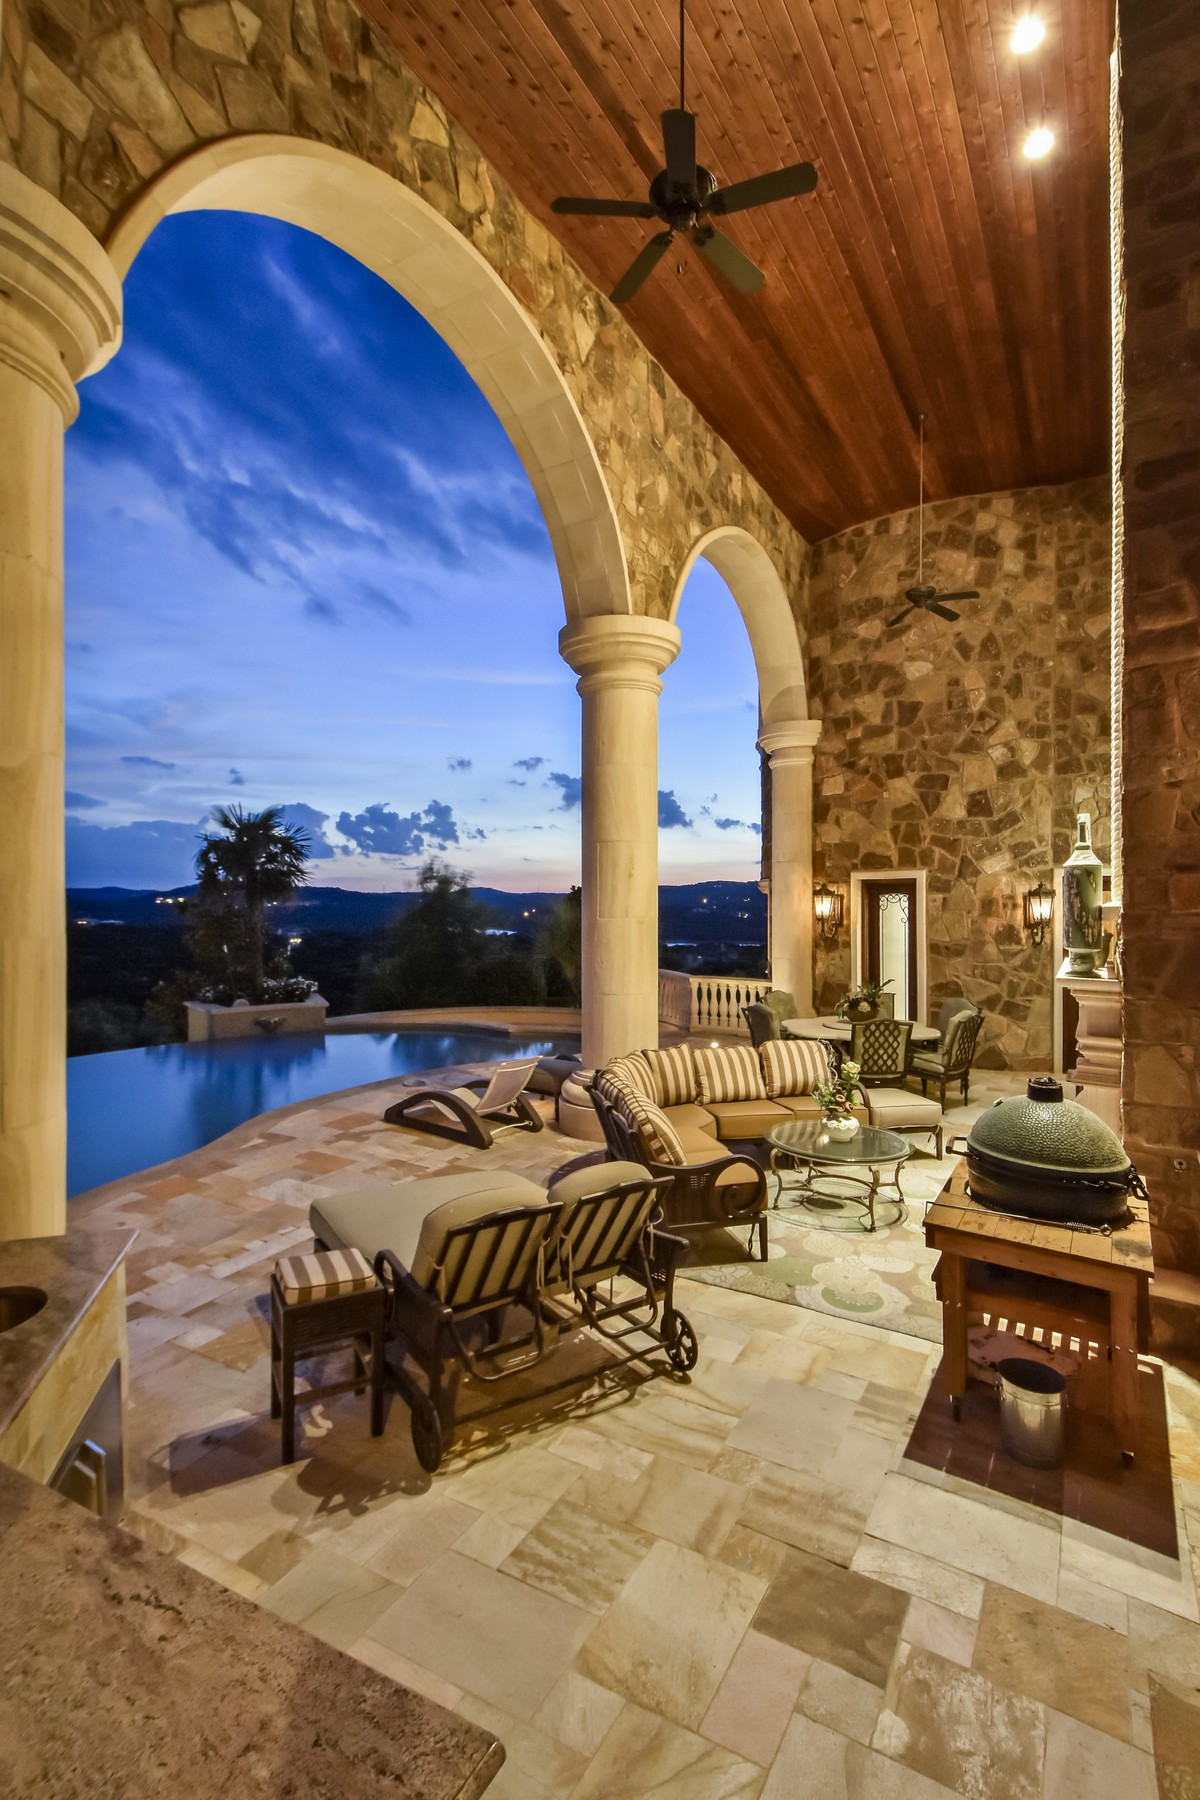 Additional photo for property listing at Tuscan Villa with Amazing Lake Travis Views 8319 Lime Creek Rd Austin, Texas 78641 United States